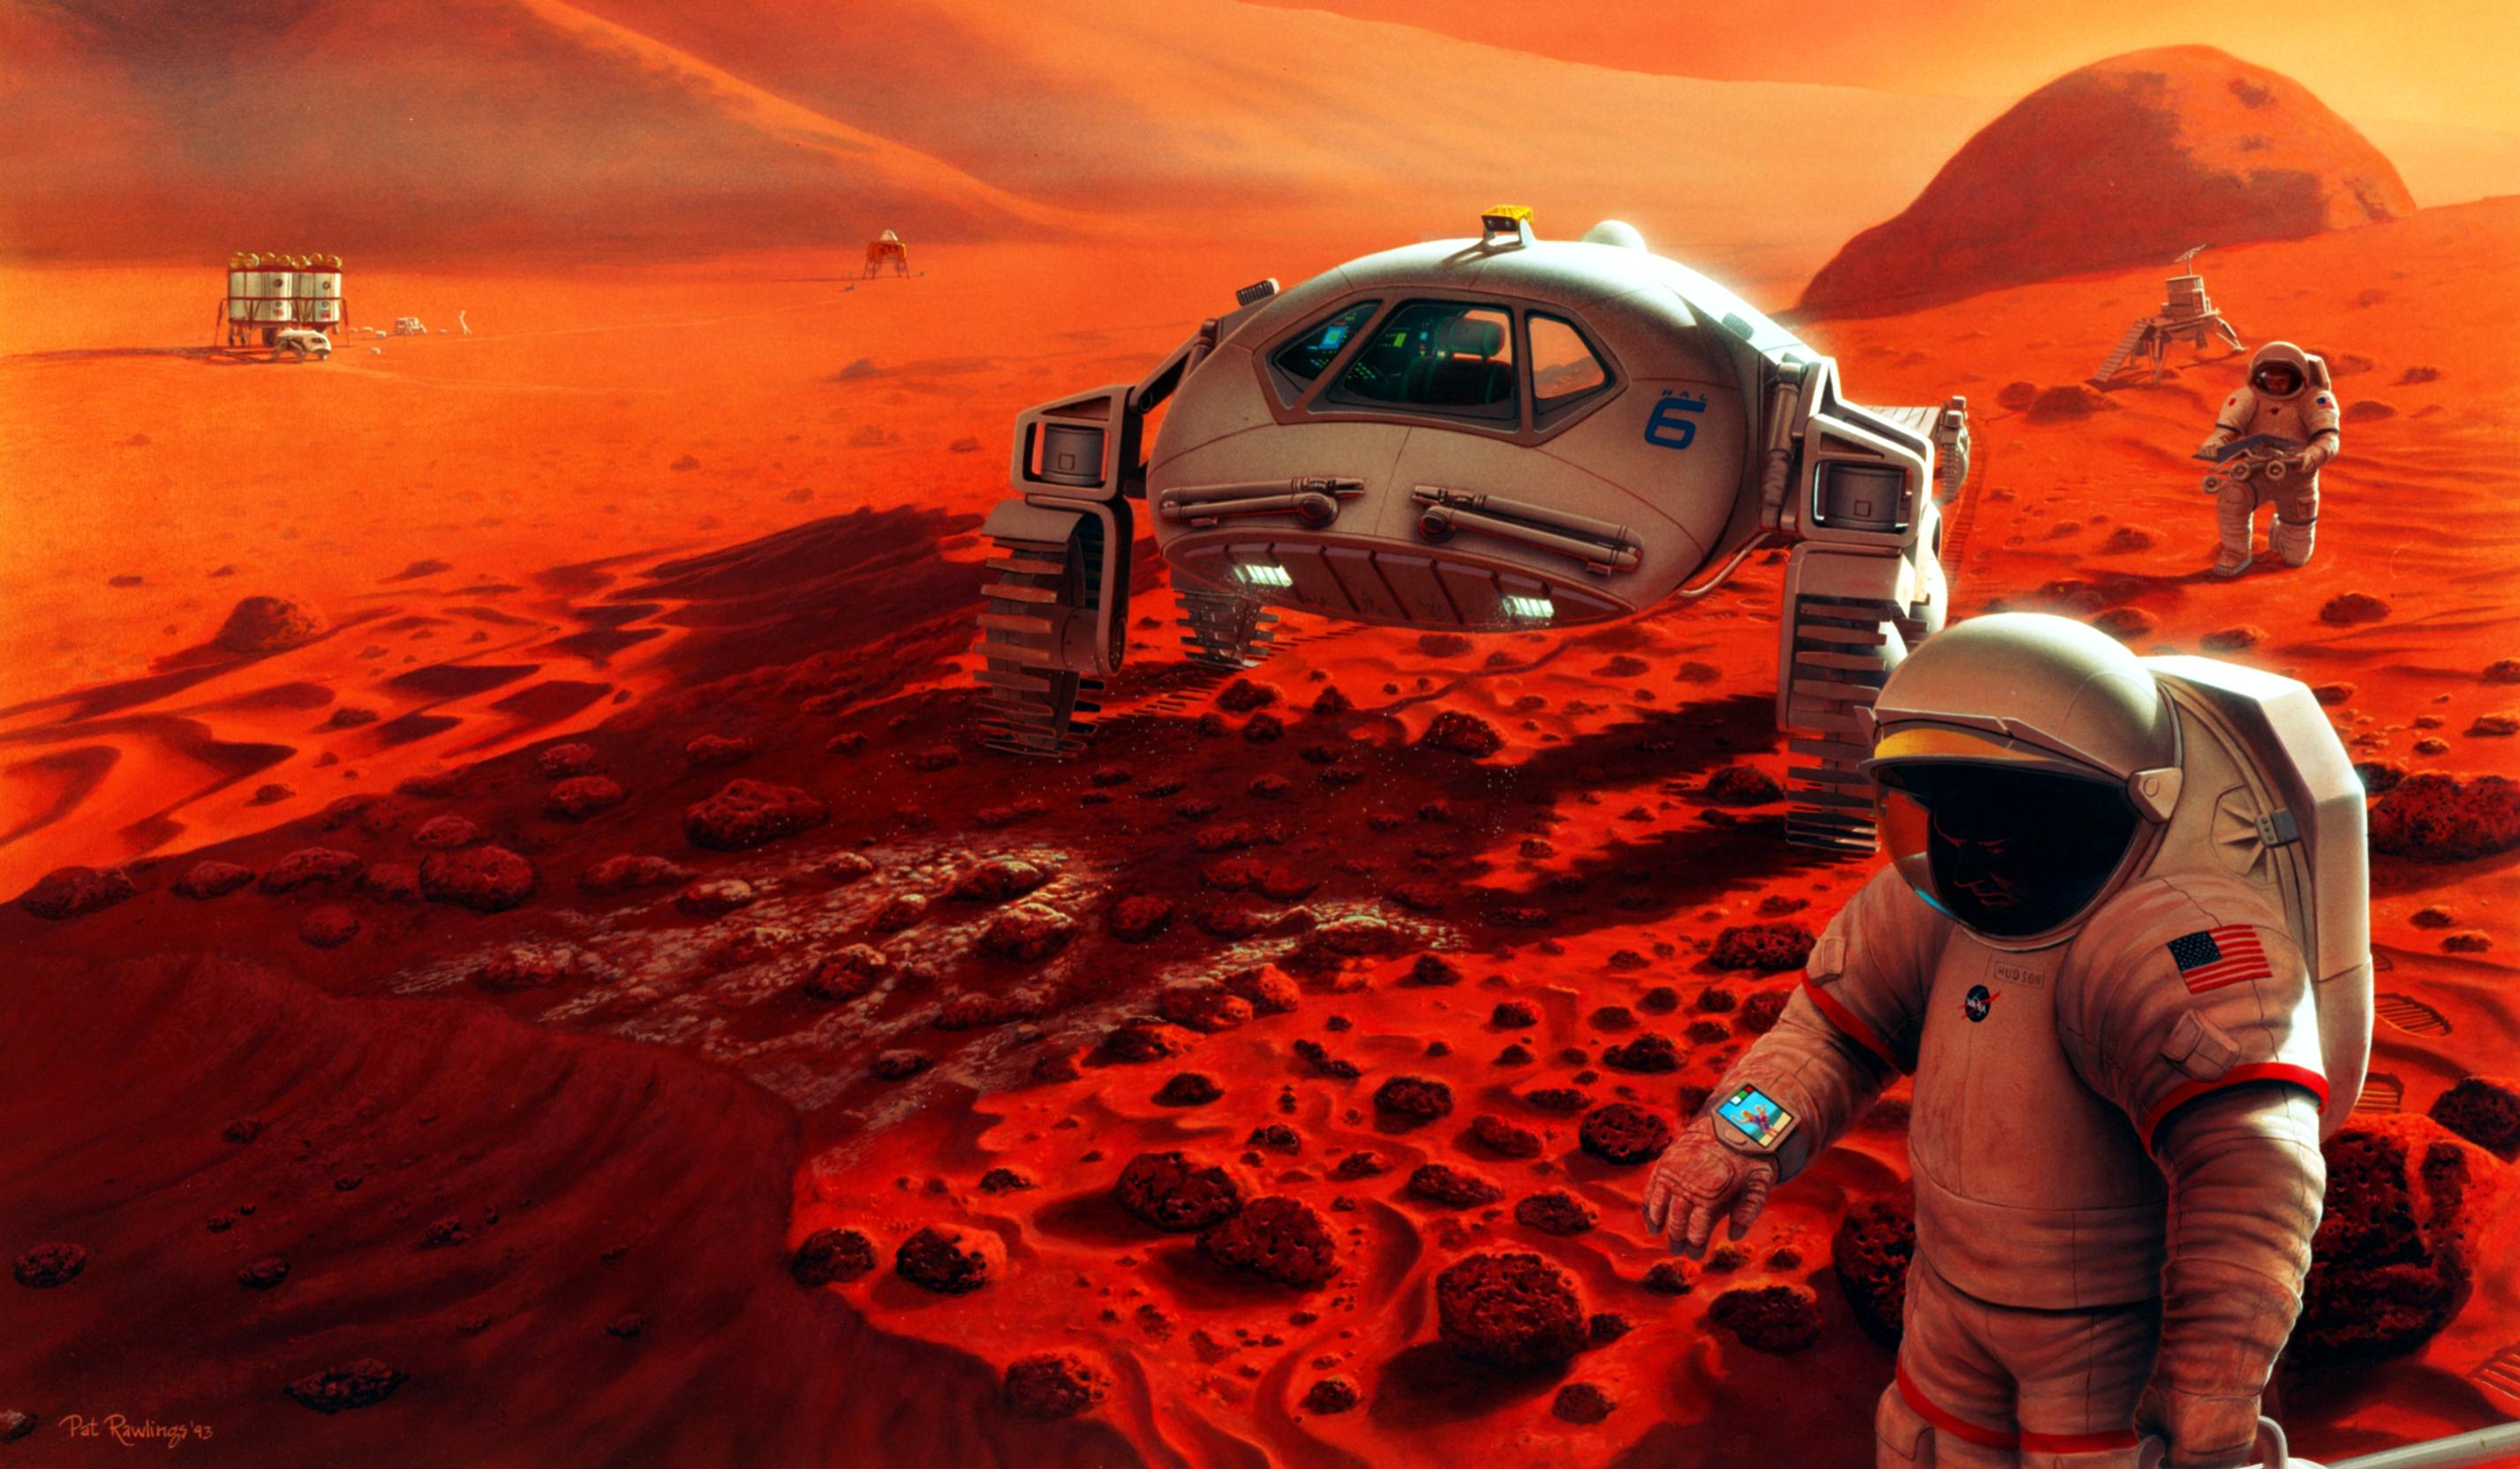 humanitys mission to find life on mars